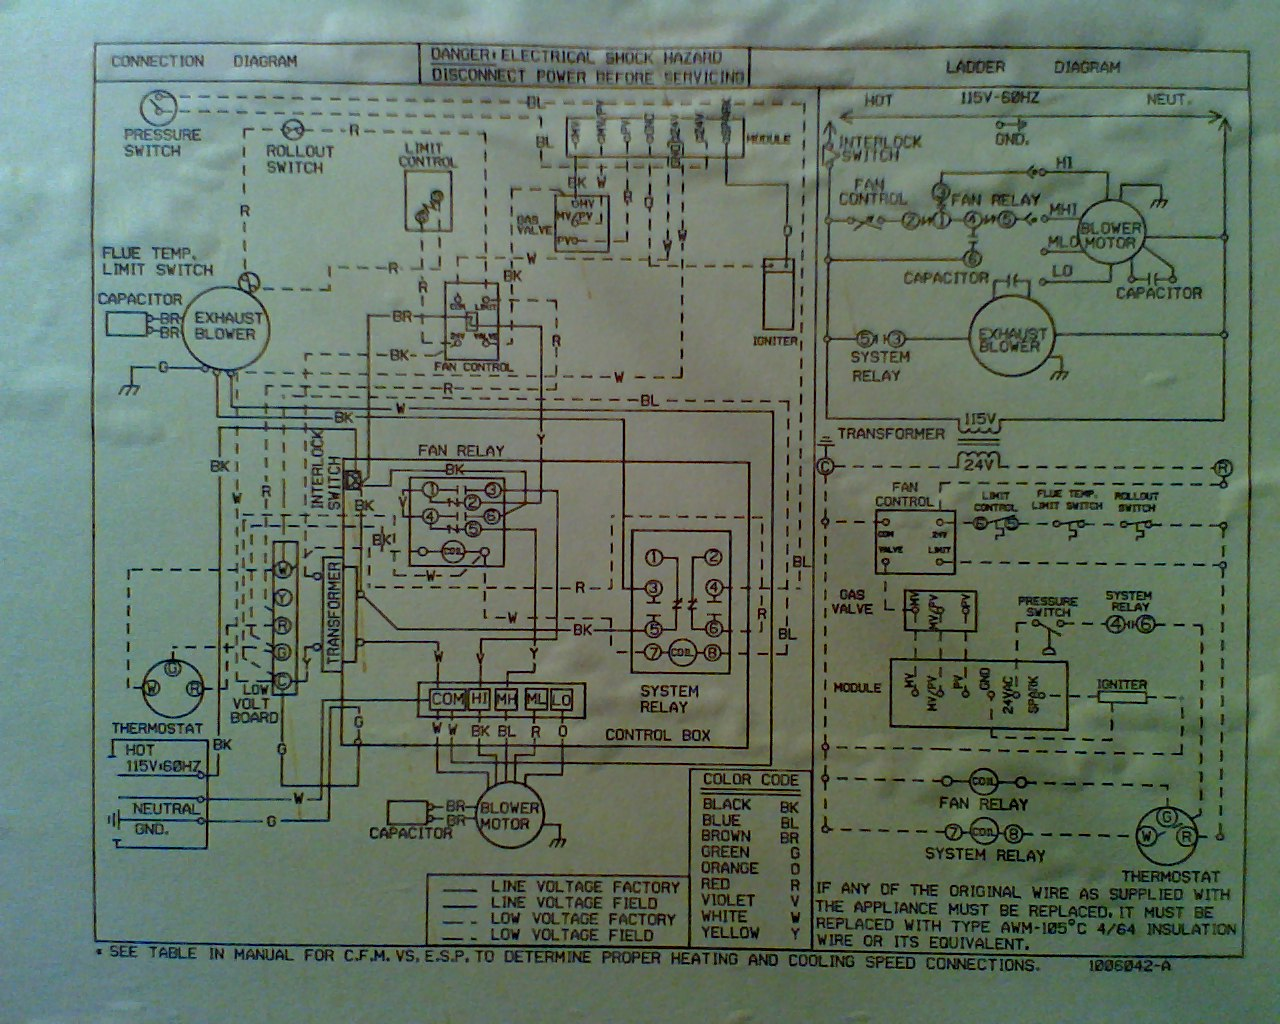 2009 11 20_231603_1120091711a air conditioner y wire grihon com ac, coolers & devices tempstar 2200 air conditioner wiring diagram at creativeand.co